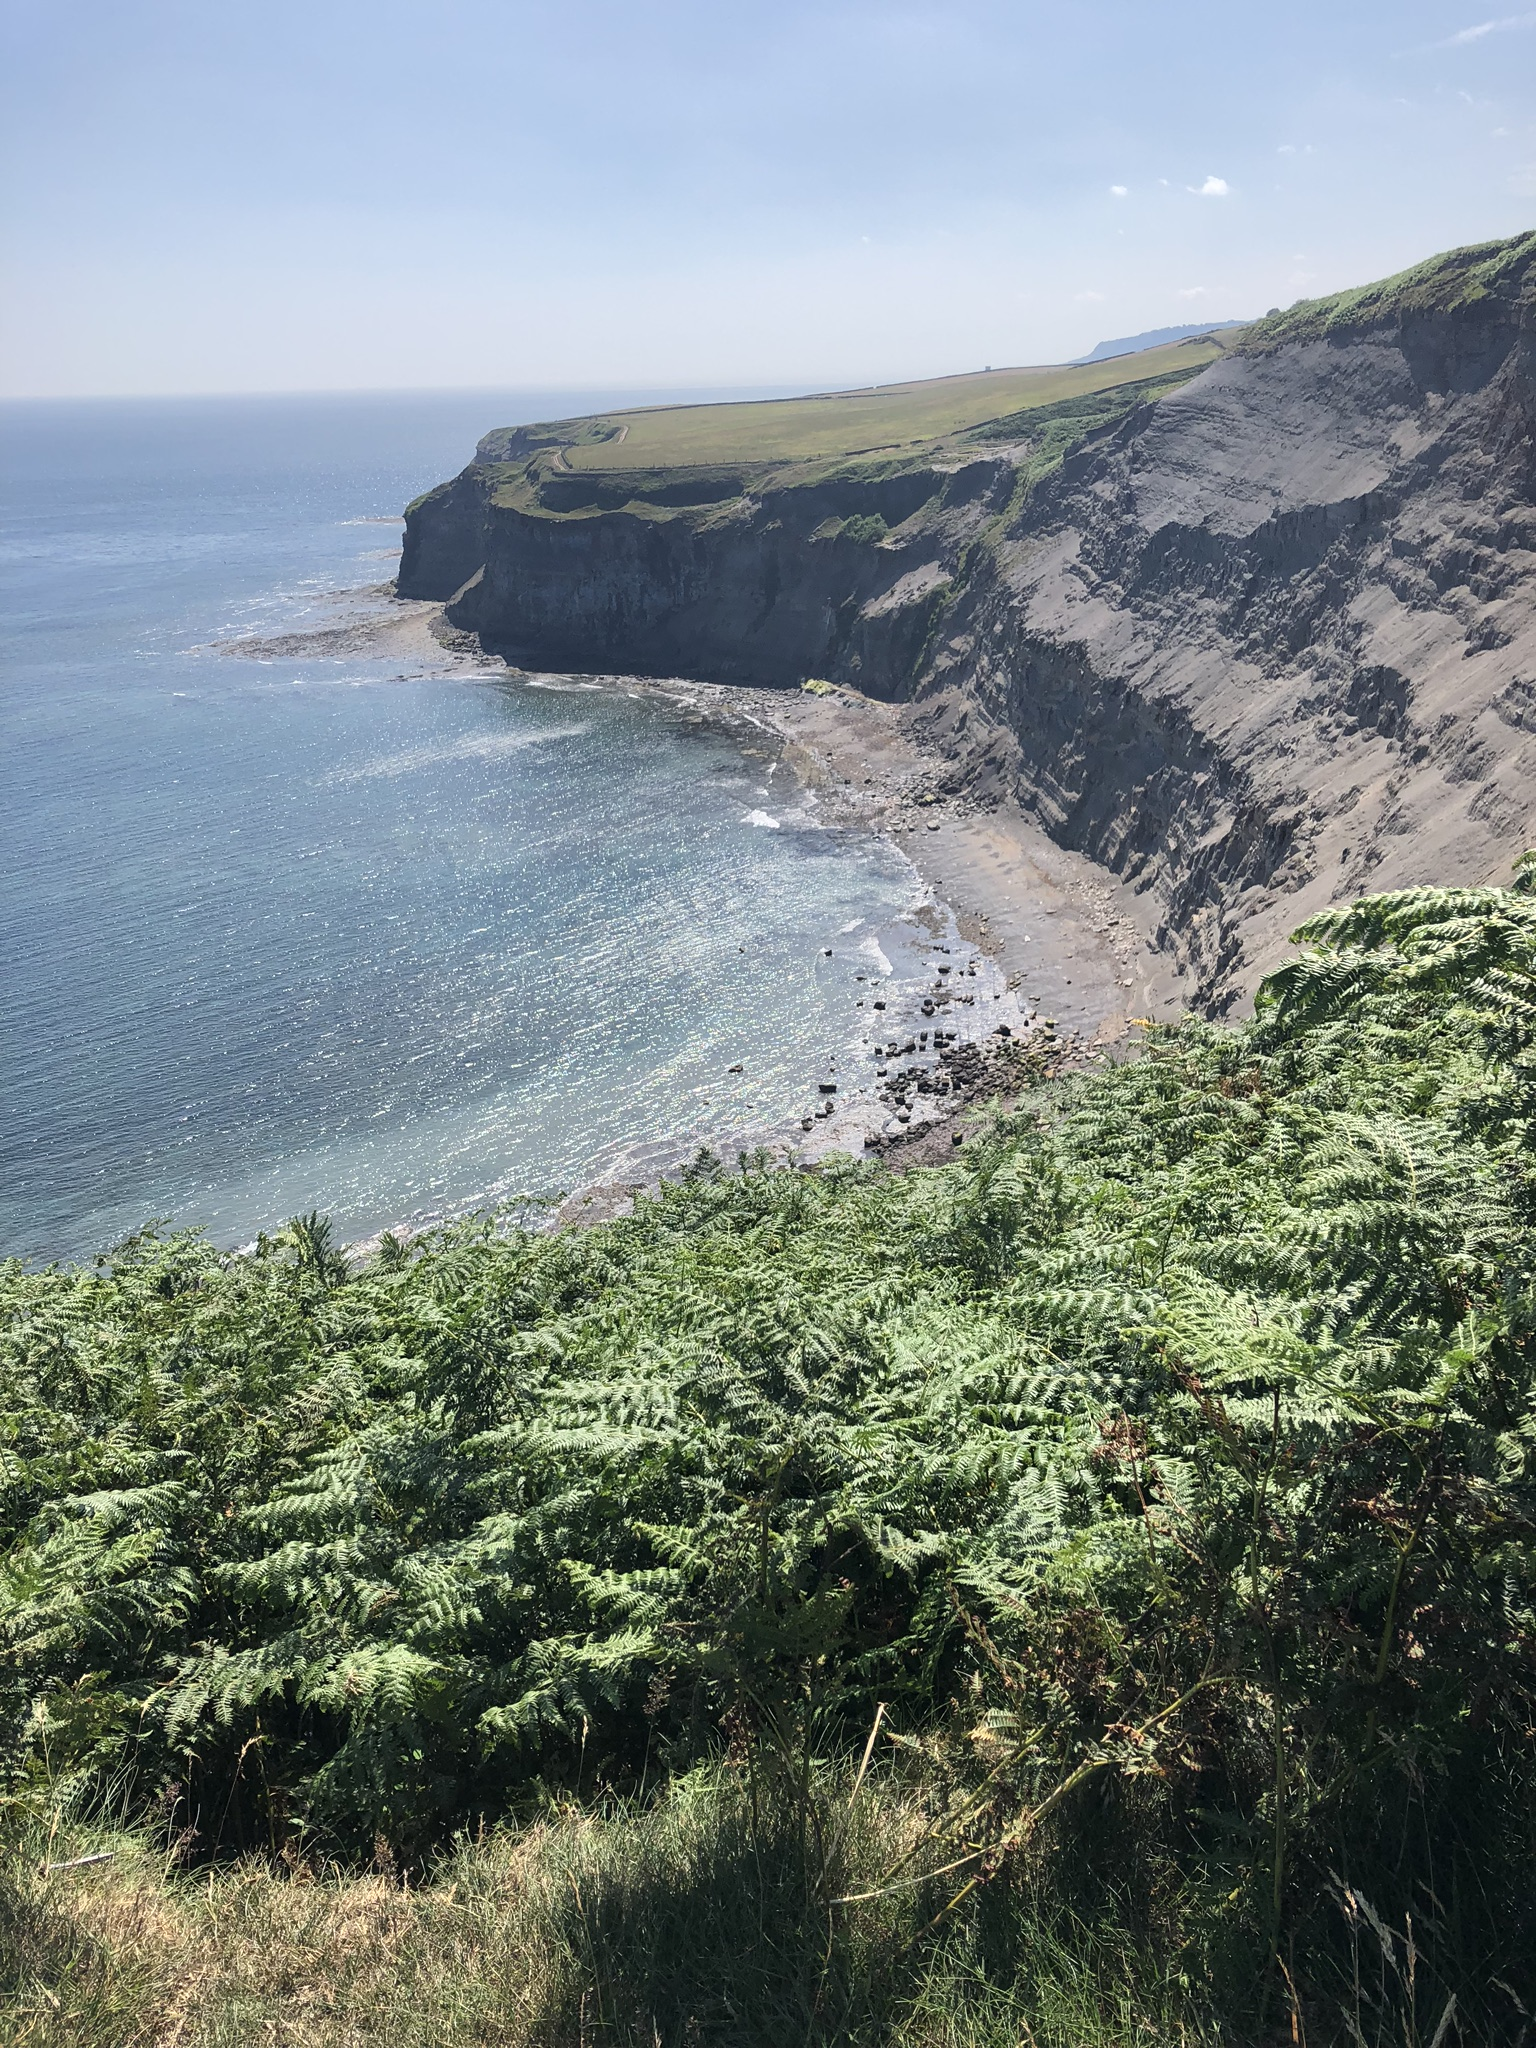 To see an ocean again was pure joy. This is the coastline of the North Sea approaching Robin's Hood Bay.